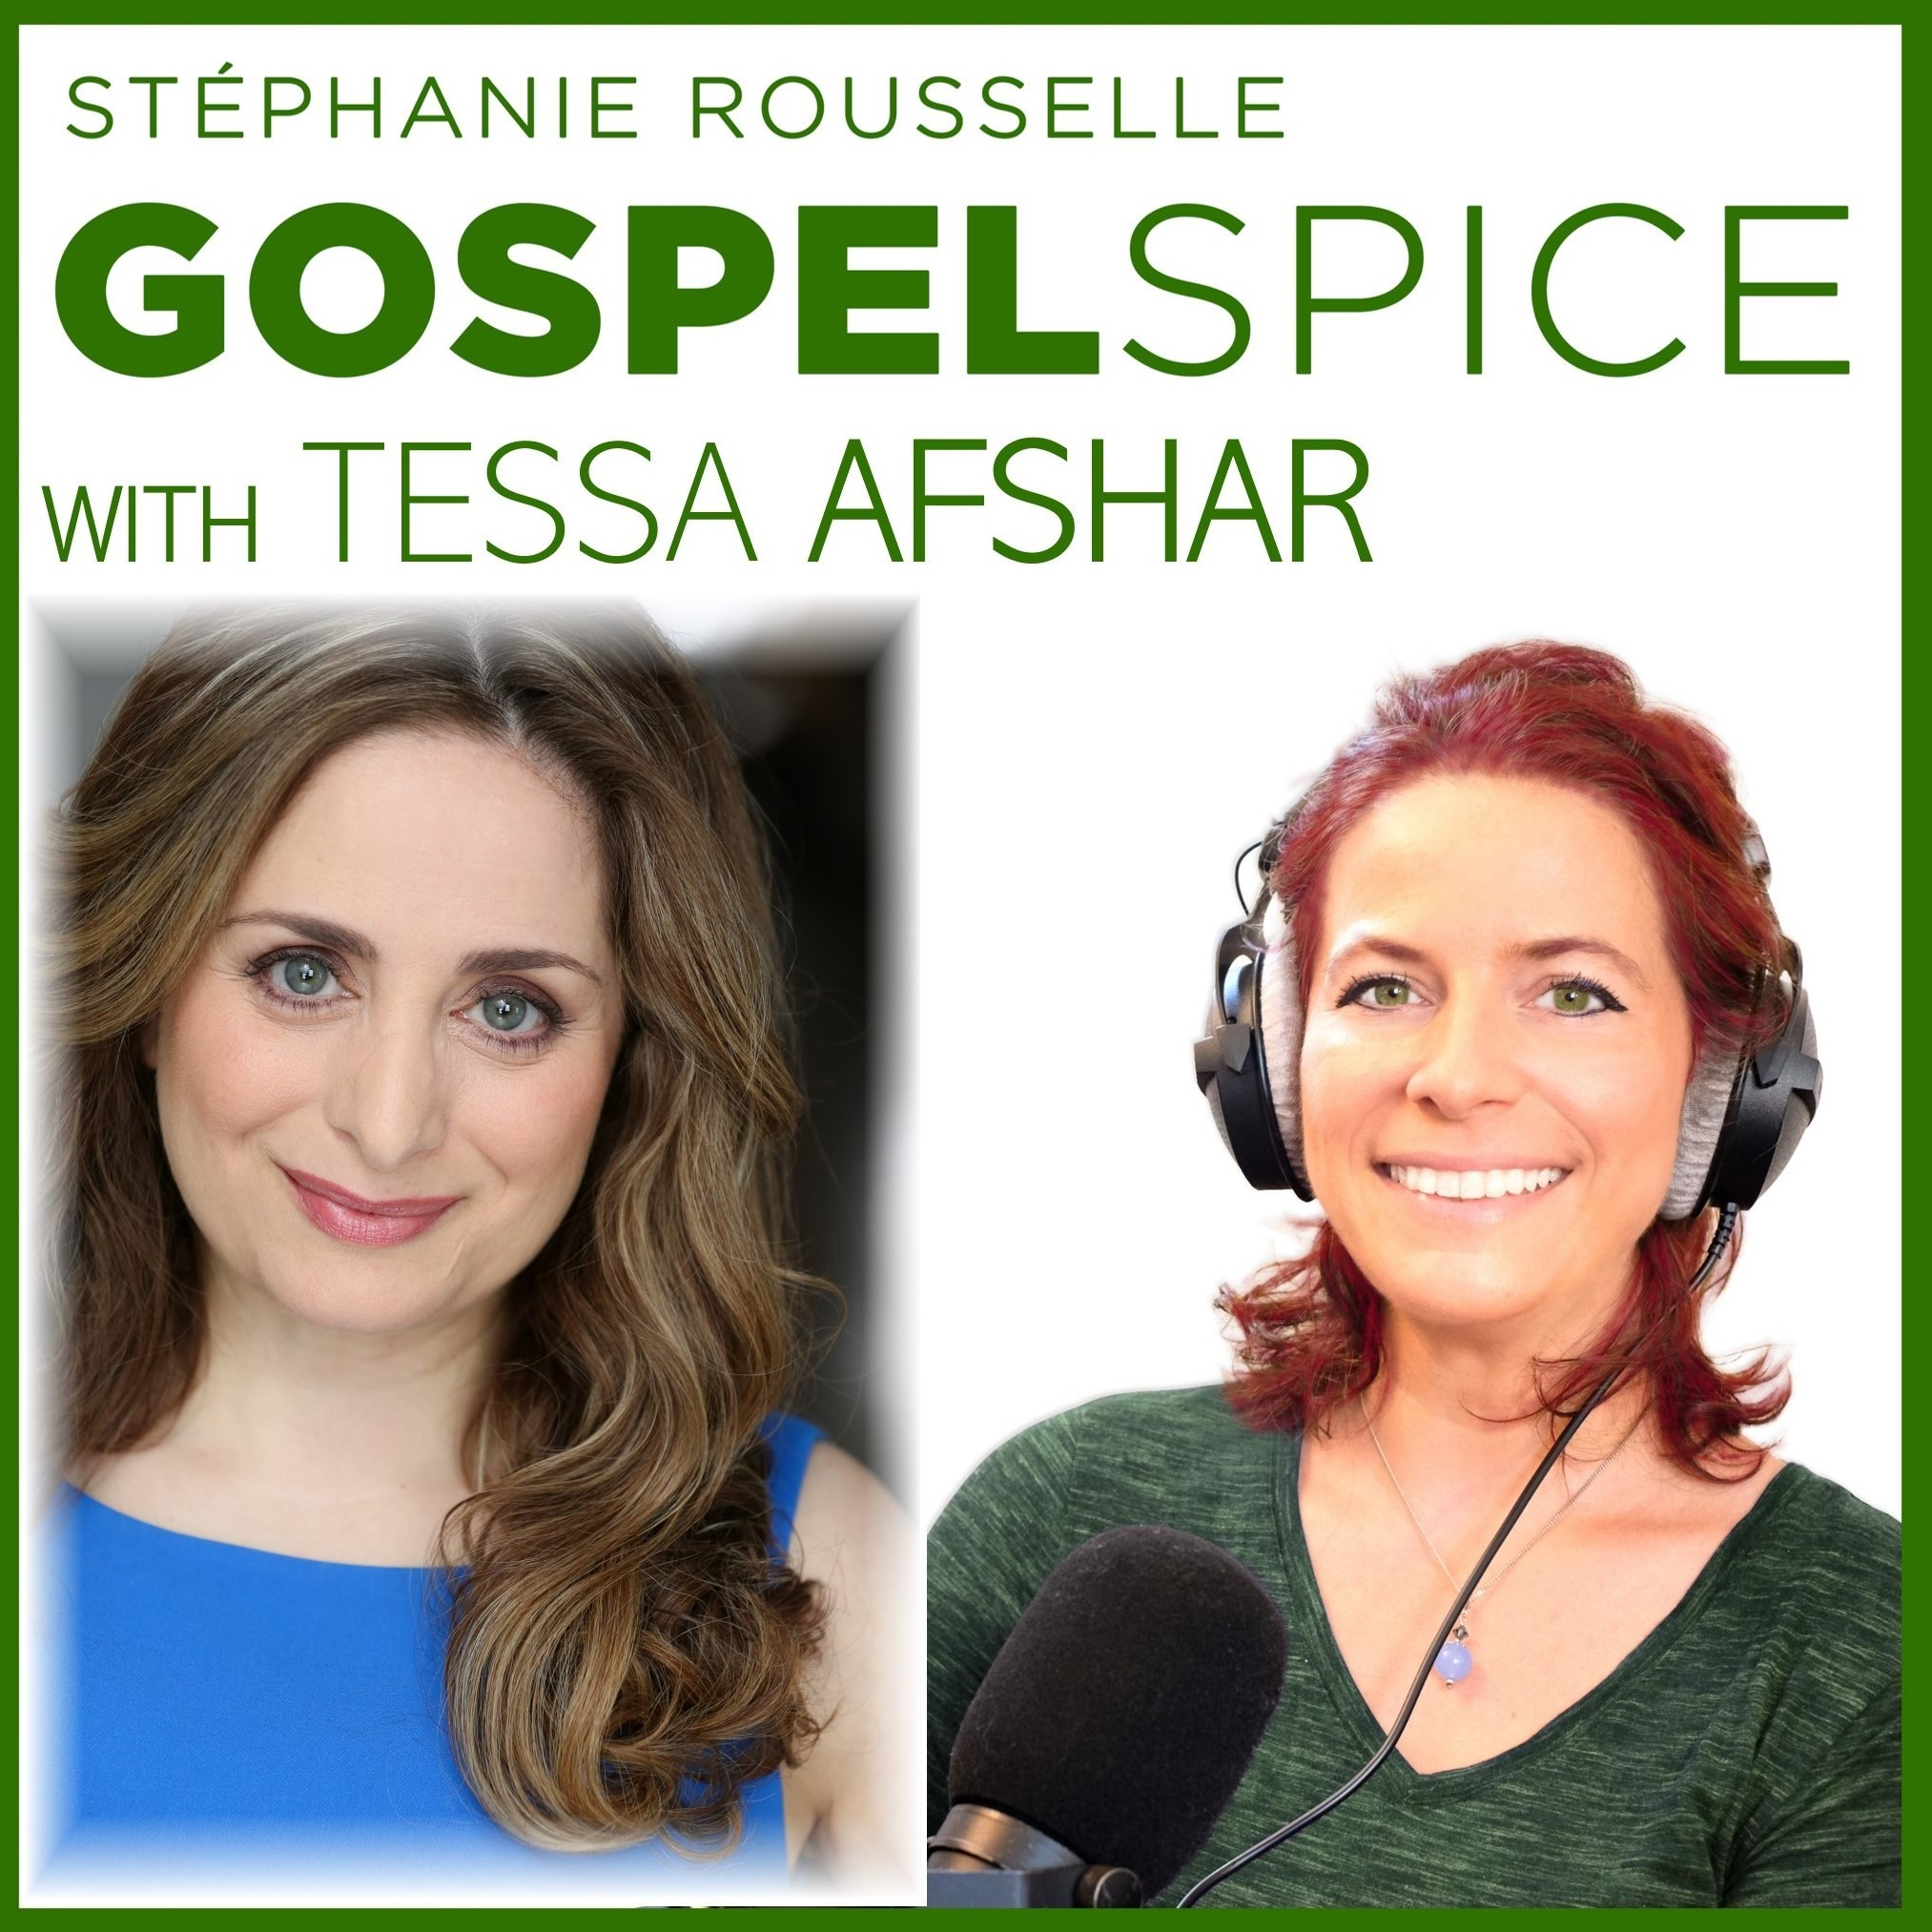 Find yourself in the eyes of Christ -- with Tessa Afshar